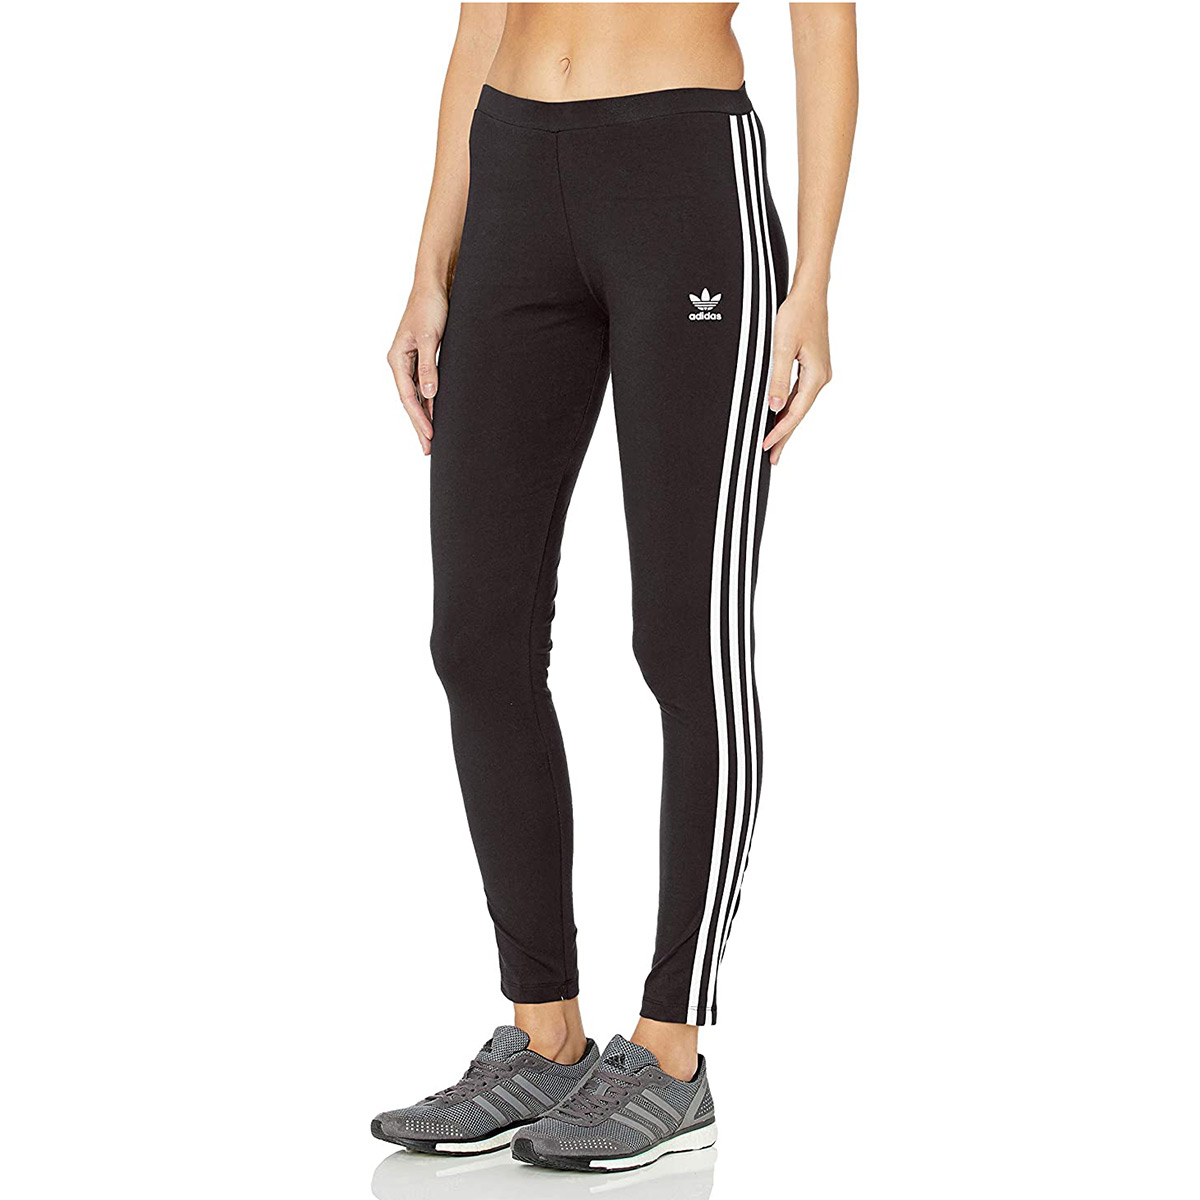 adidas leggings amazon sale